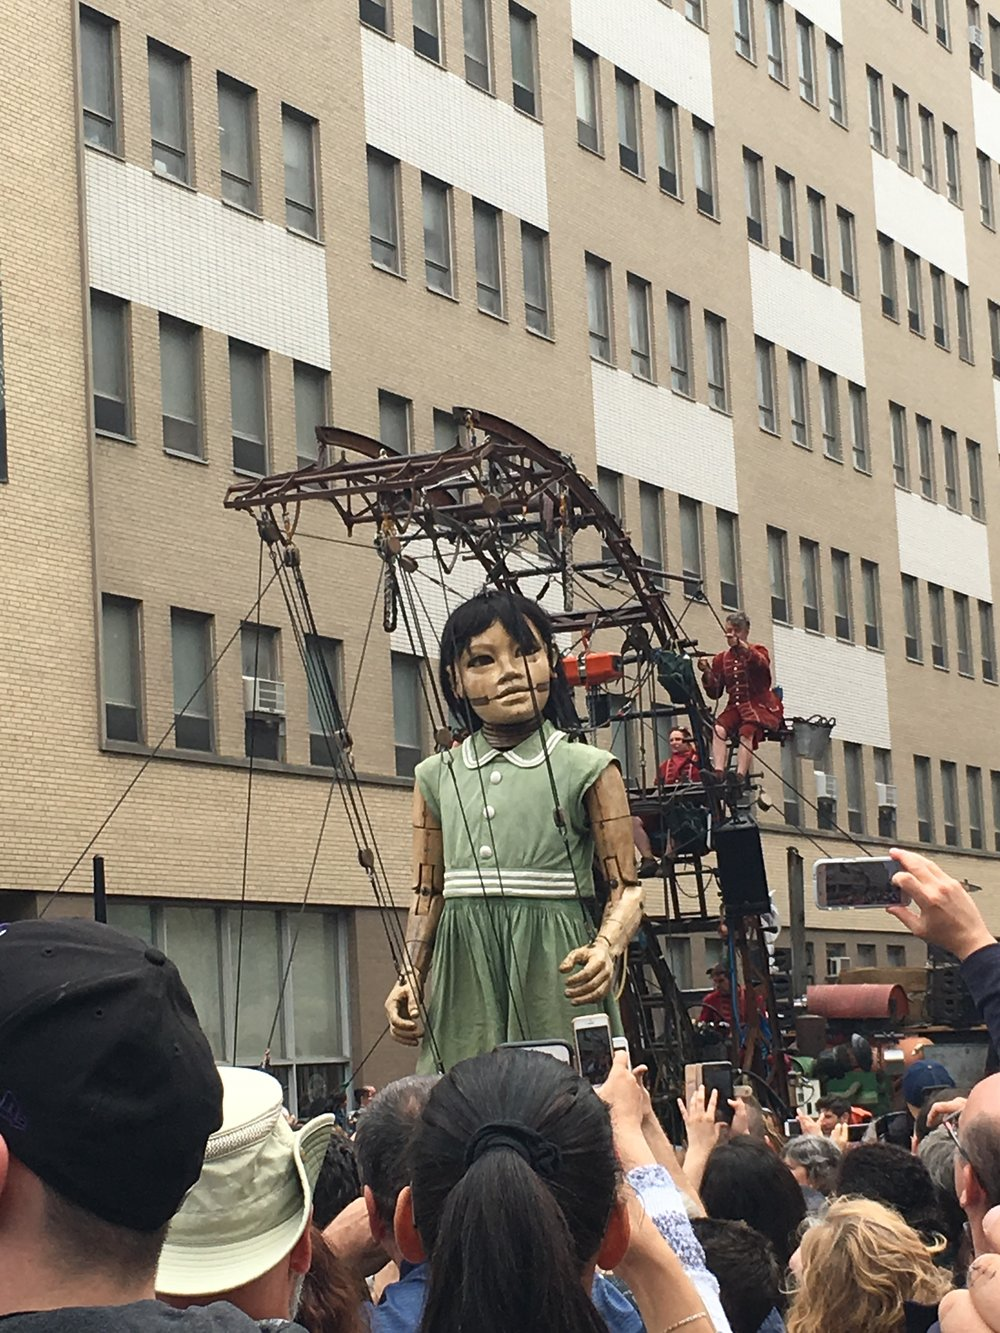 Giants parading in the streets of Montreal for its 375th